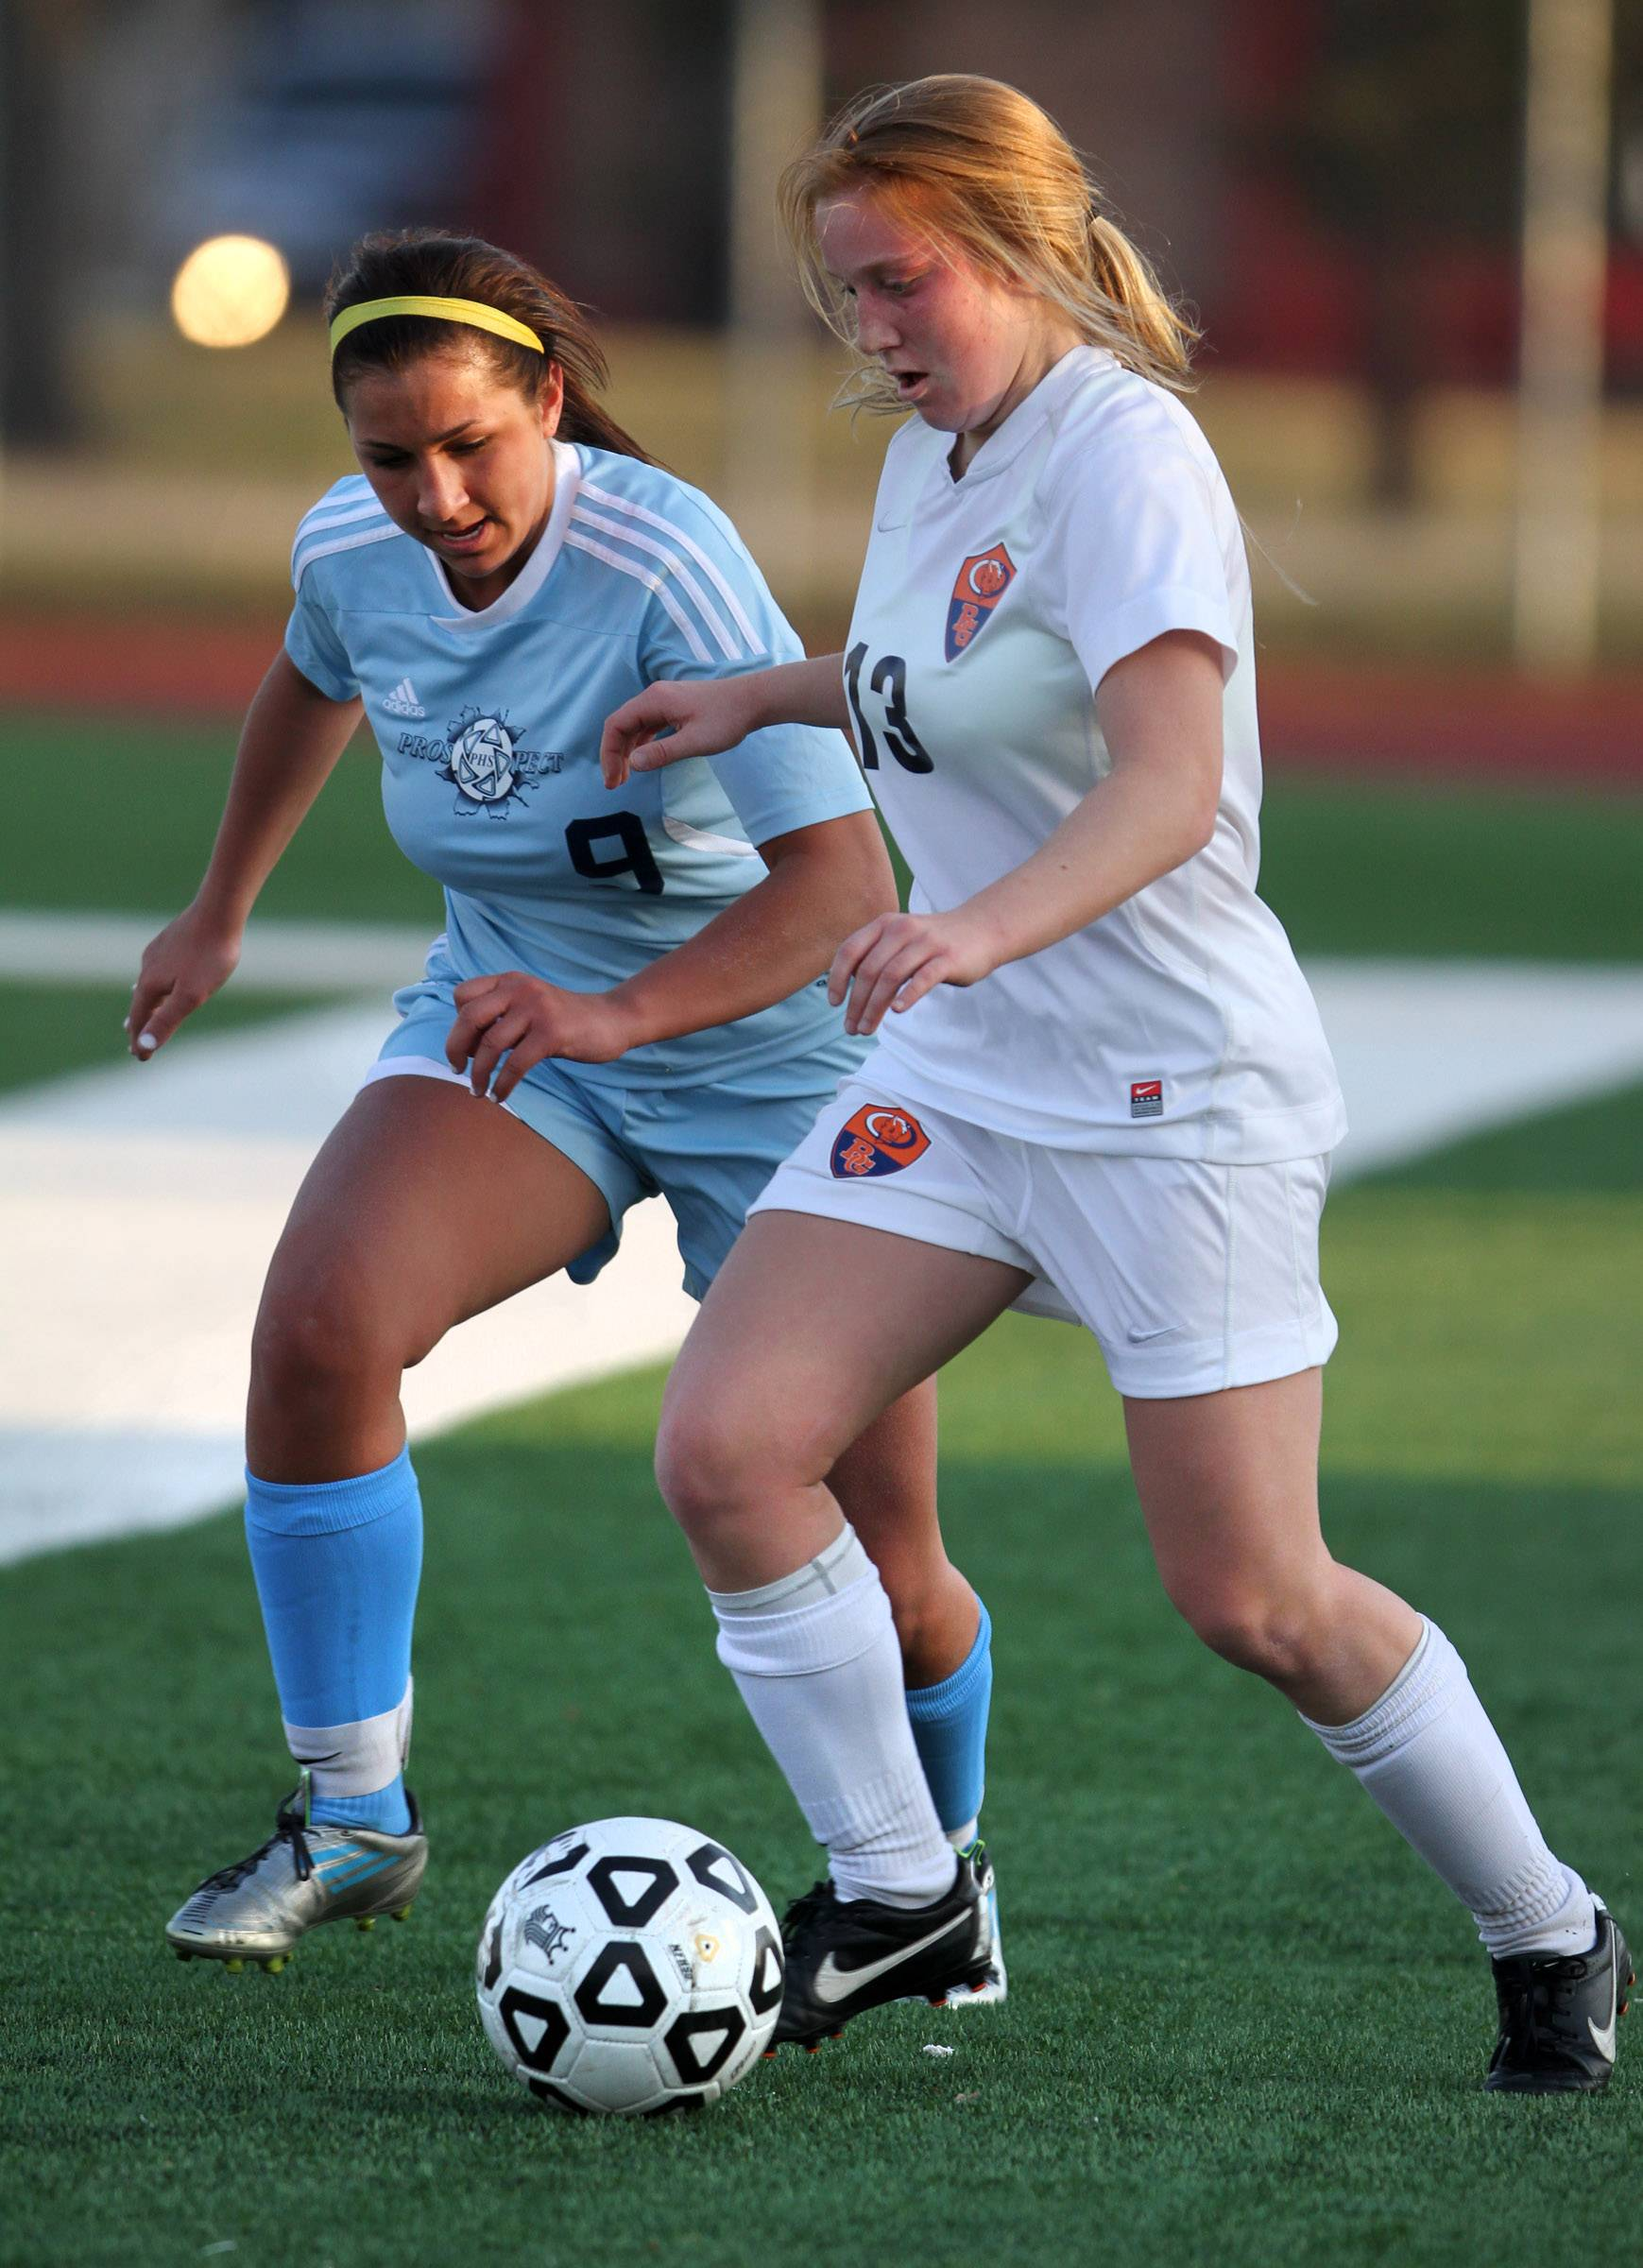 Buffalo Grove forward Kelli Zickert, right, dibbles the ball past Prospect defender Kristen Frasco on Friday at Buffalo Grove.